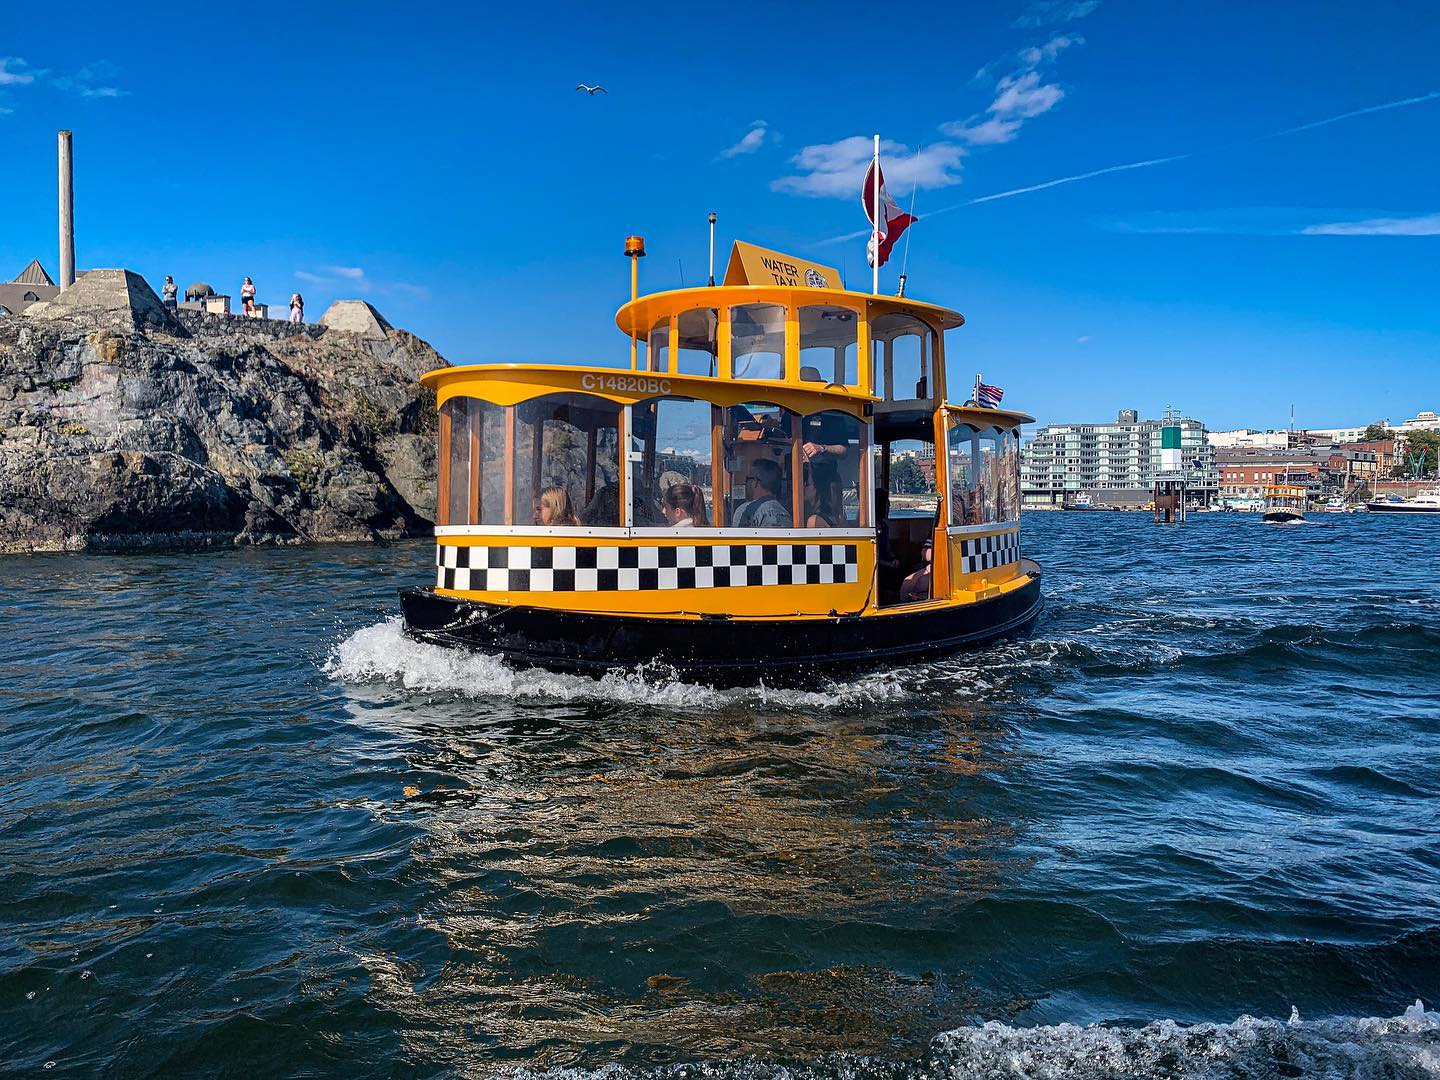 Victoria Harbour Ferry boat